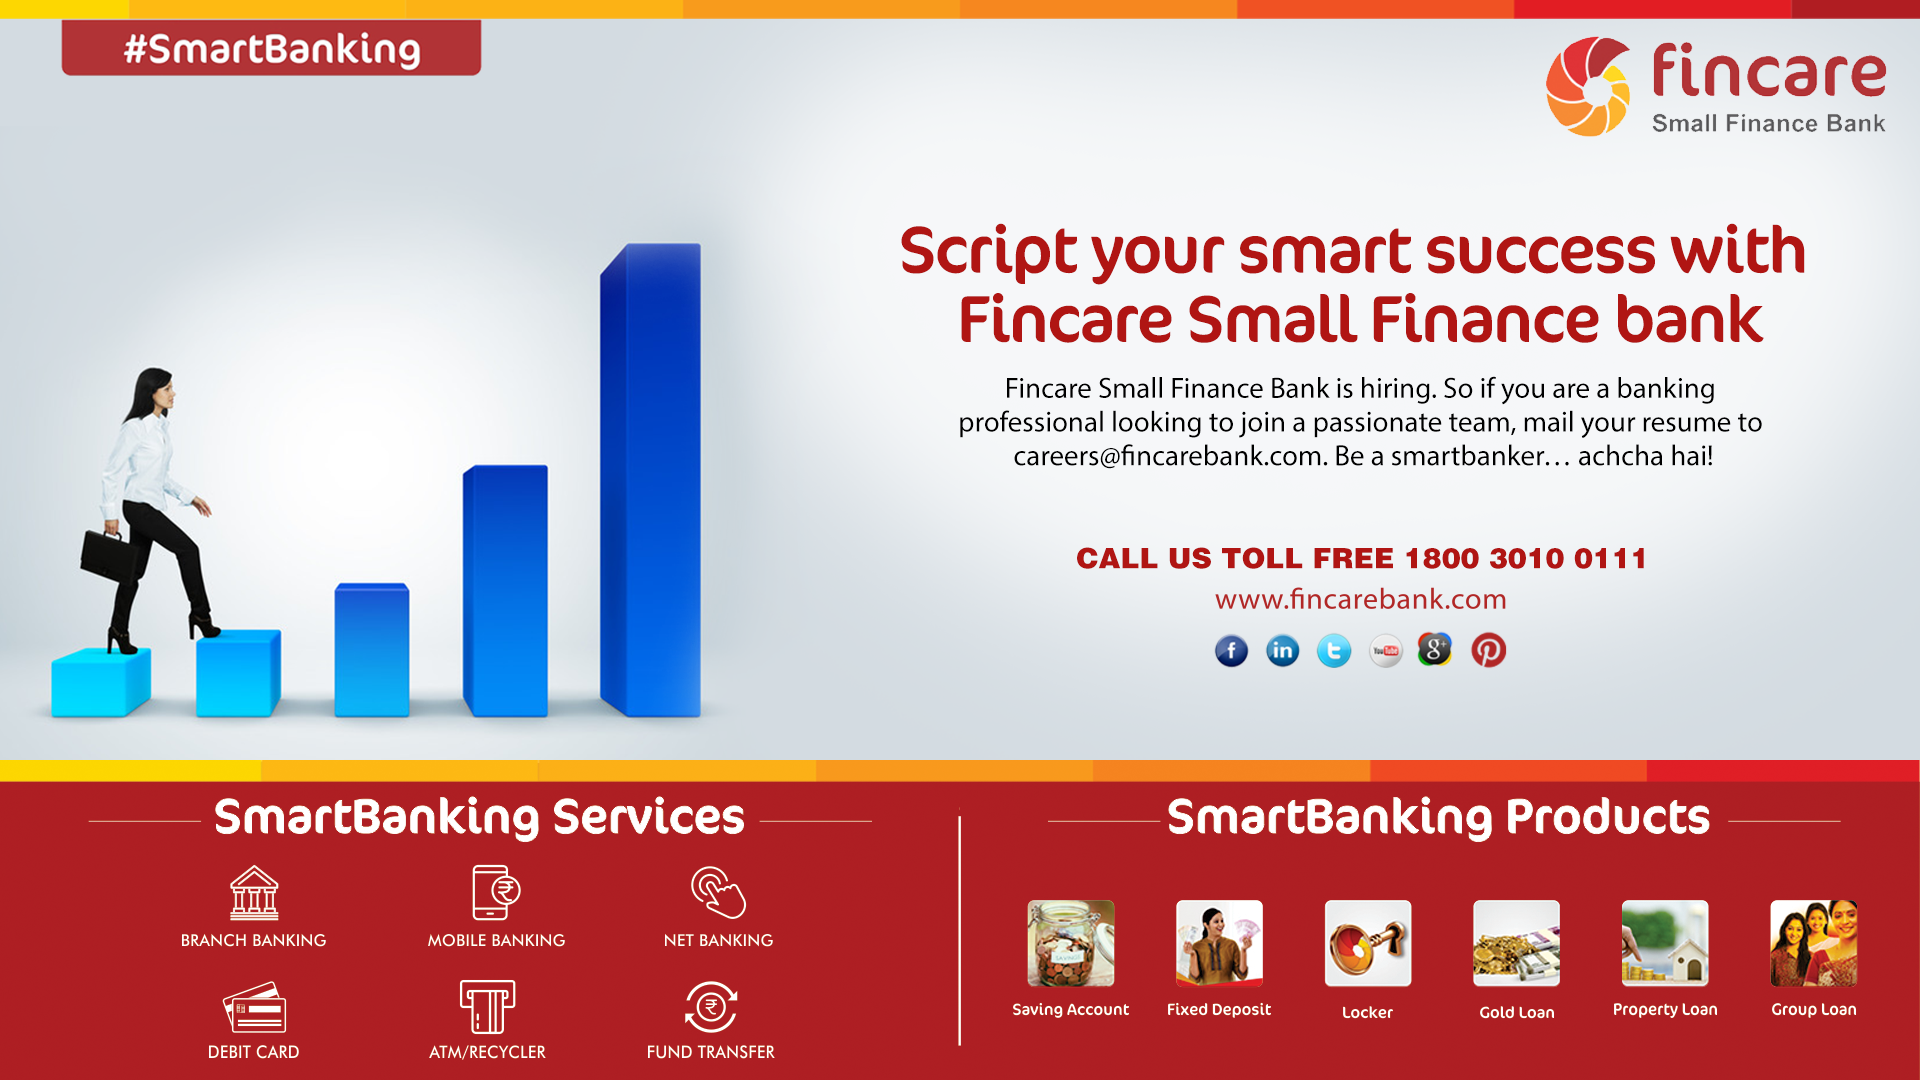 Script your smart success with Fincare Small Finance Bank